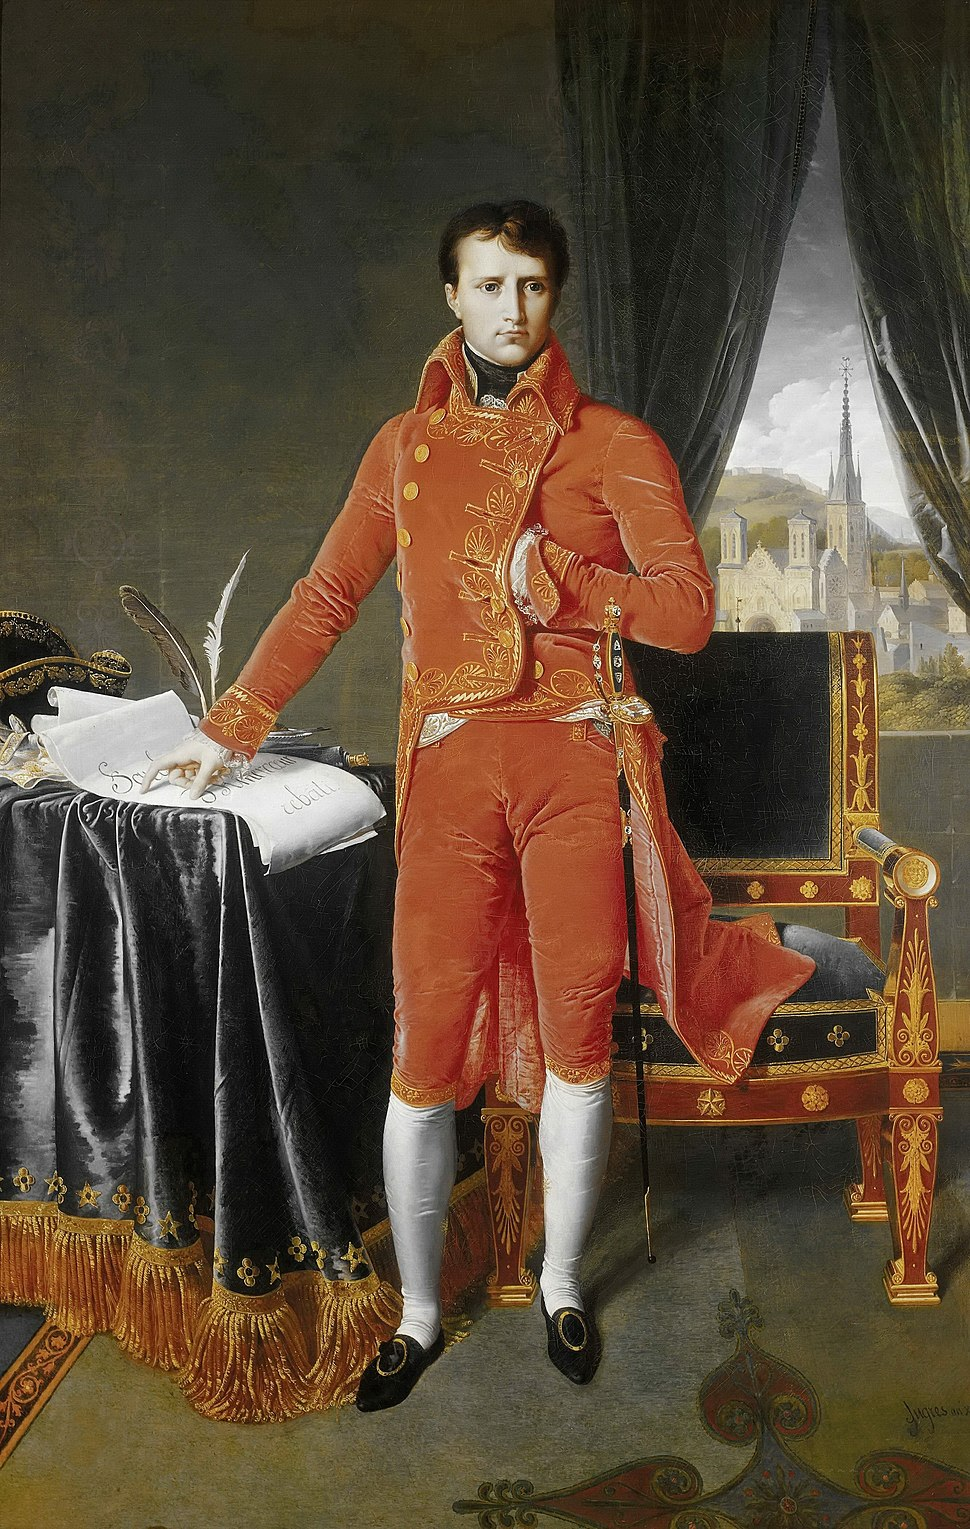 Jean Auguste Dominique Ingres, Portrait de Napol%C3%A9on Bonaparte en premier consul